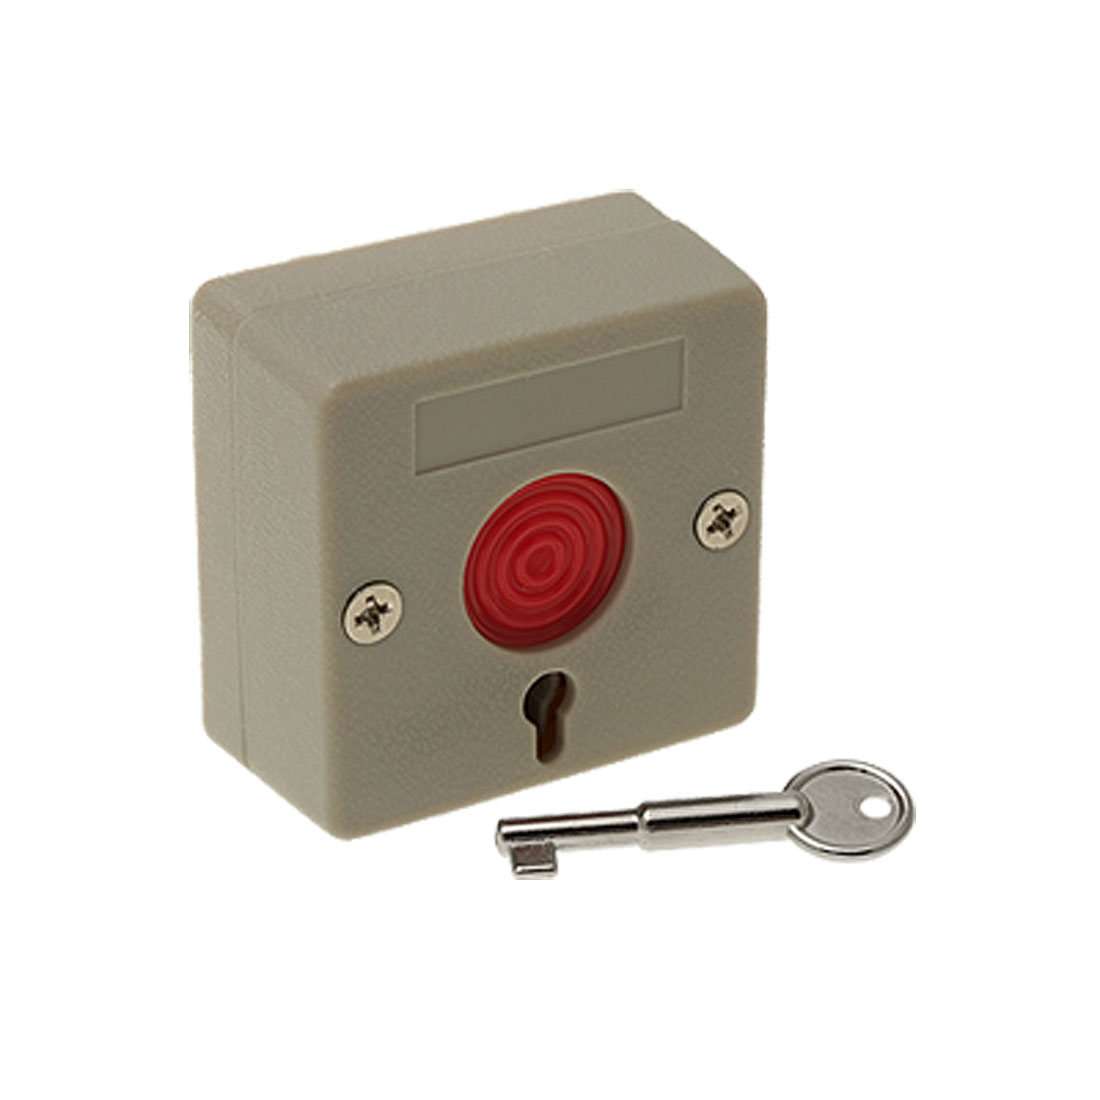 Home Office Emergency Switch Button with Key